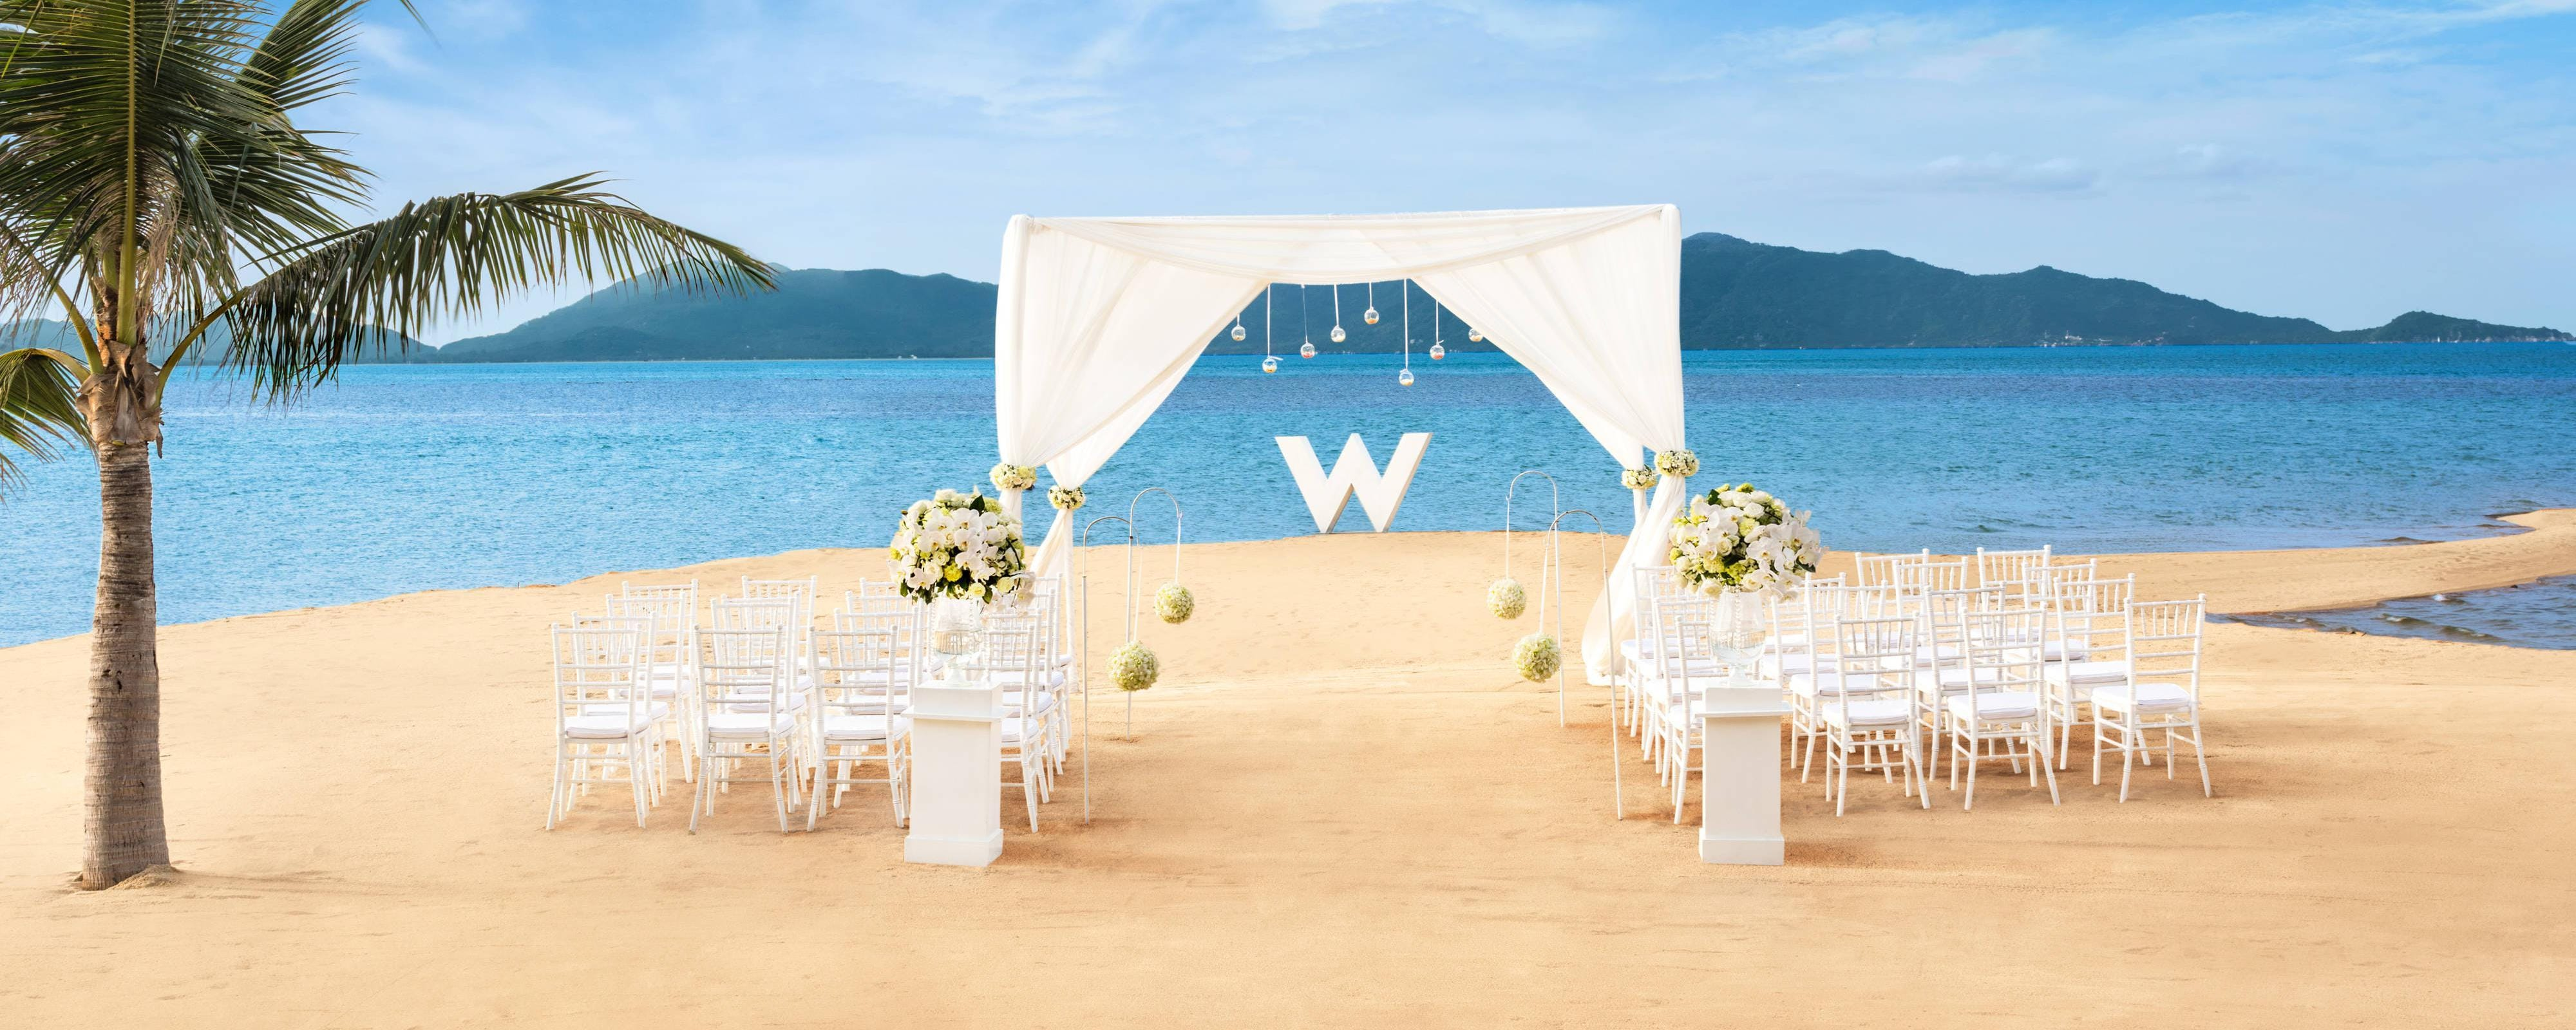 Wedding Reception W Beach